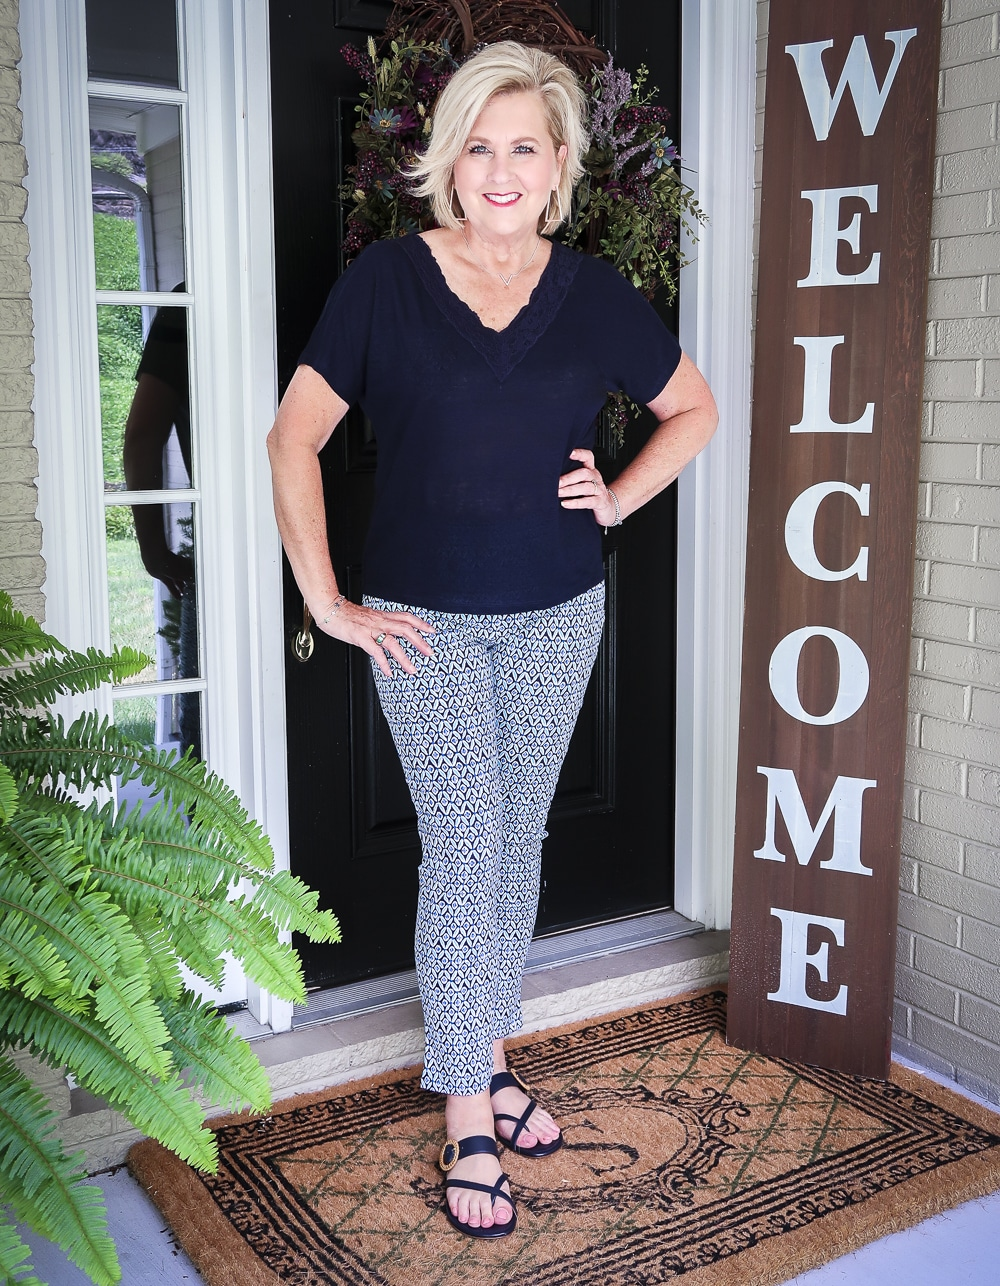 Fashion Blogger 50 Is Not Old wearing a navy linen top with a lace neckline and printed ankle pants with navy sandals